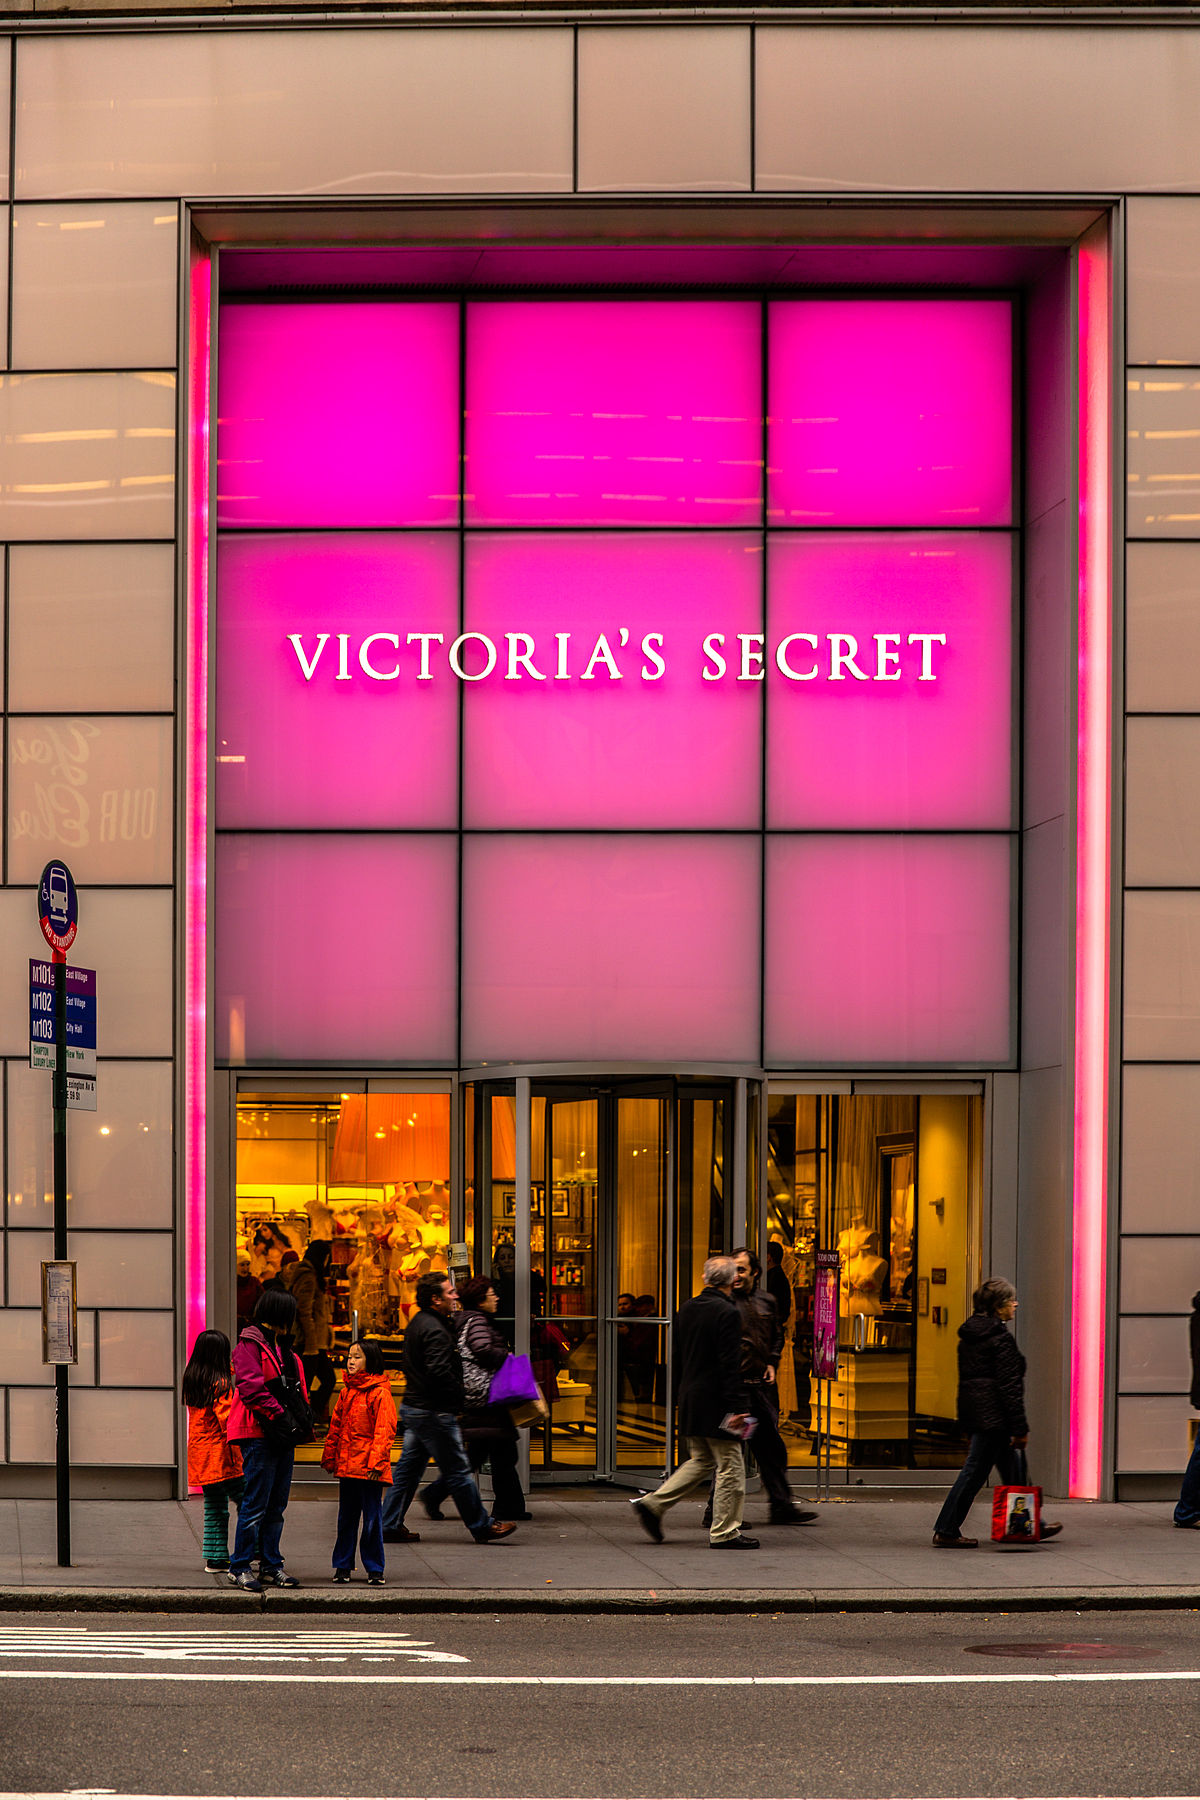 09ca6d549e8f6 Victoria s Secret - Wikipedia